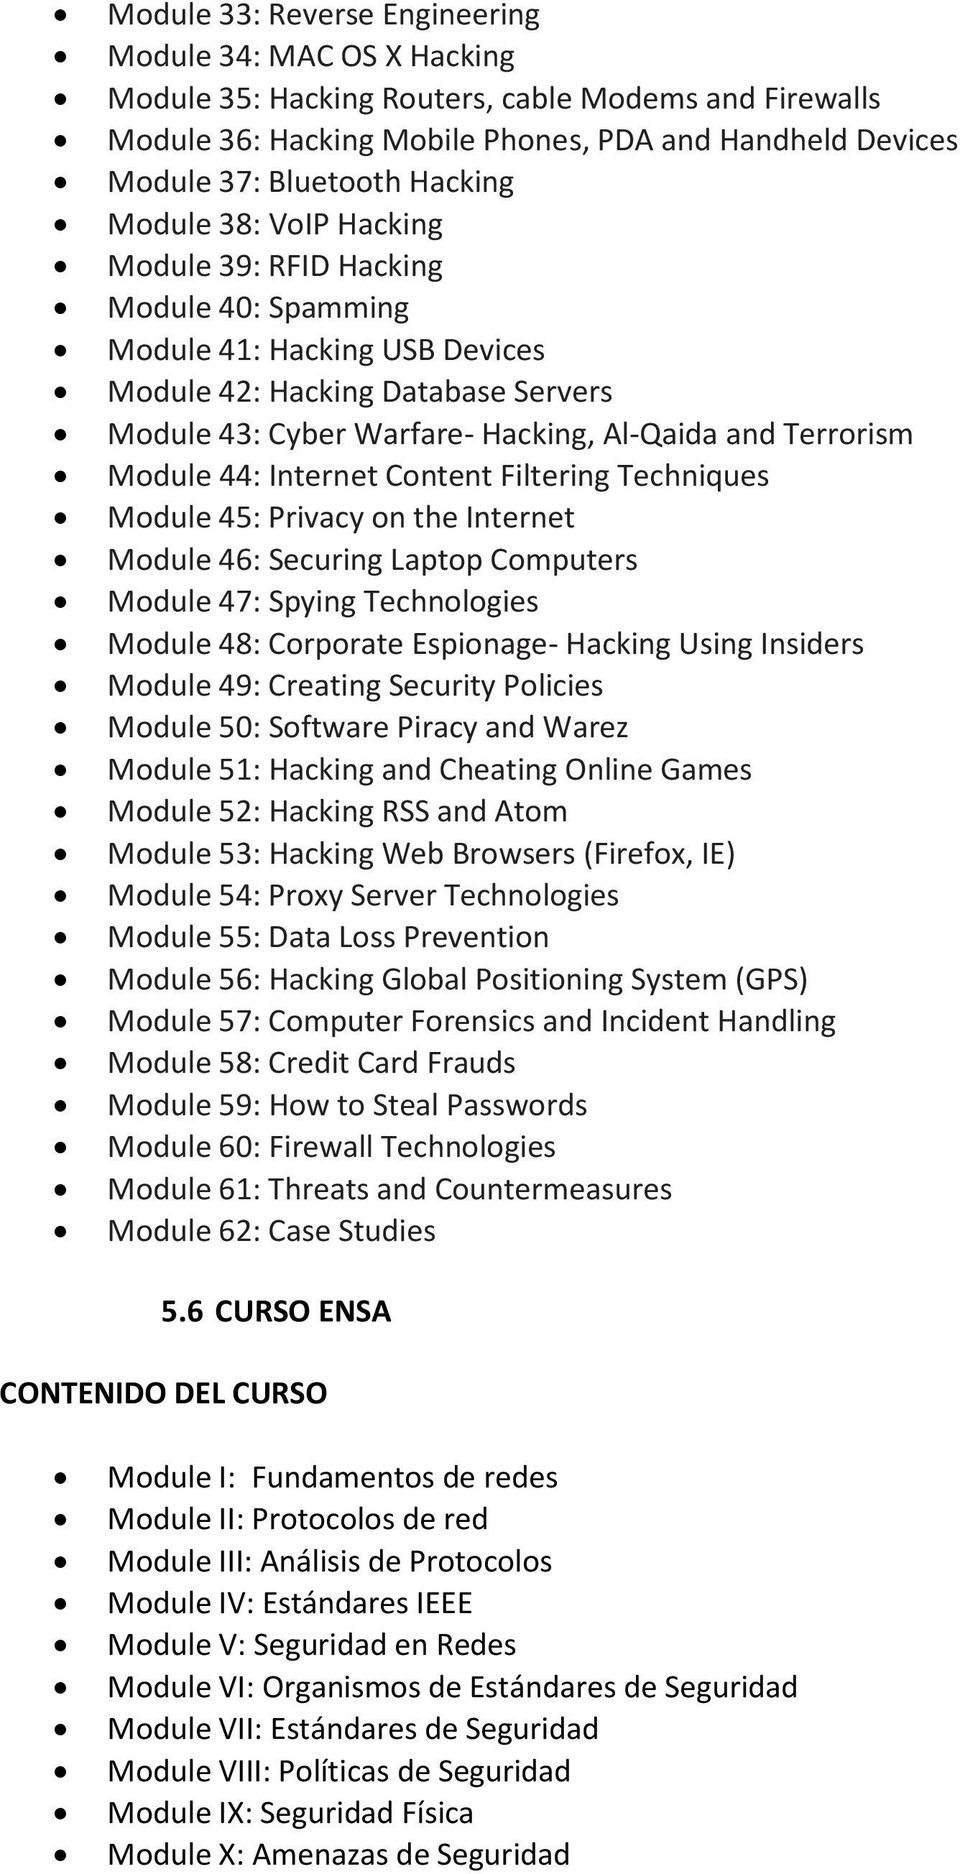 Terrorism Module 44: Internet Content Filtering Techniques Module 45: Privacy on the Internet Module 46: Securing Laptop Computers Module 47: Spying Technologies Module 48: Corporate Espionage-